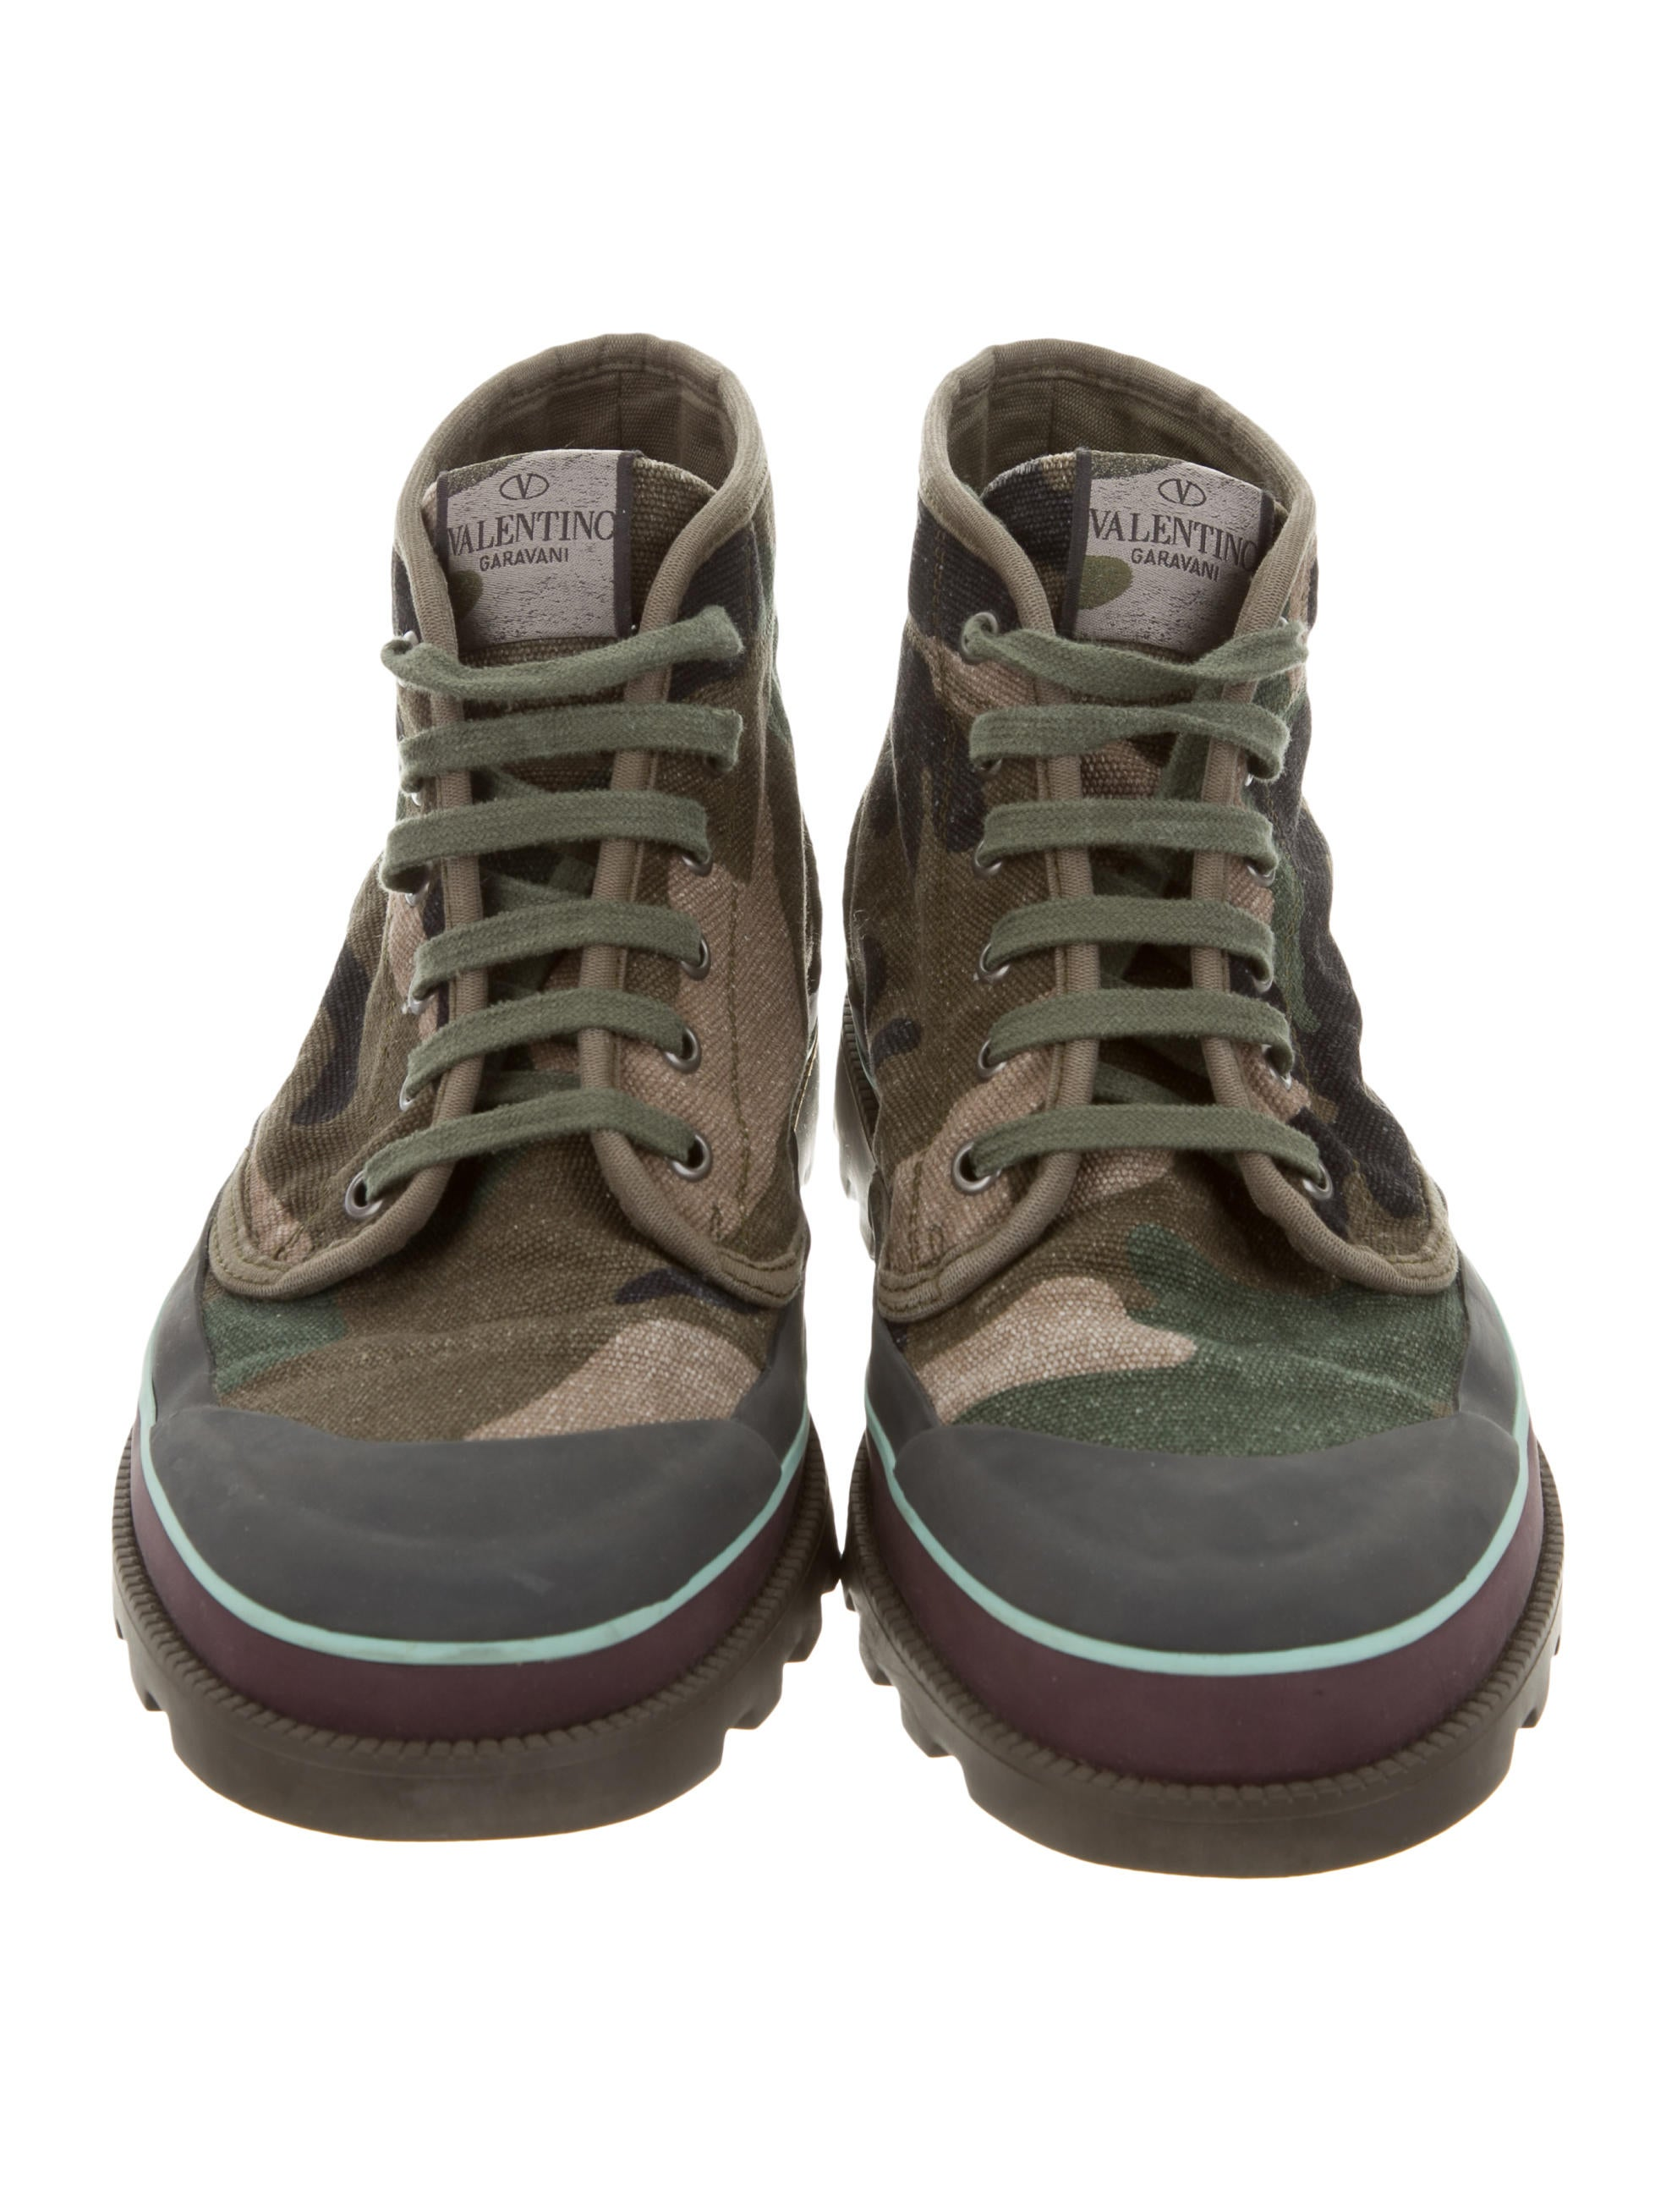 valentino camouflage sneaker boots - shoes